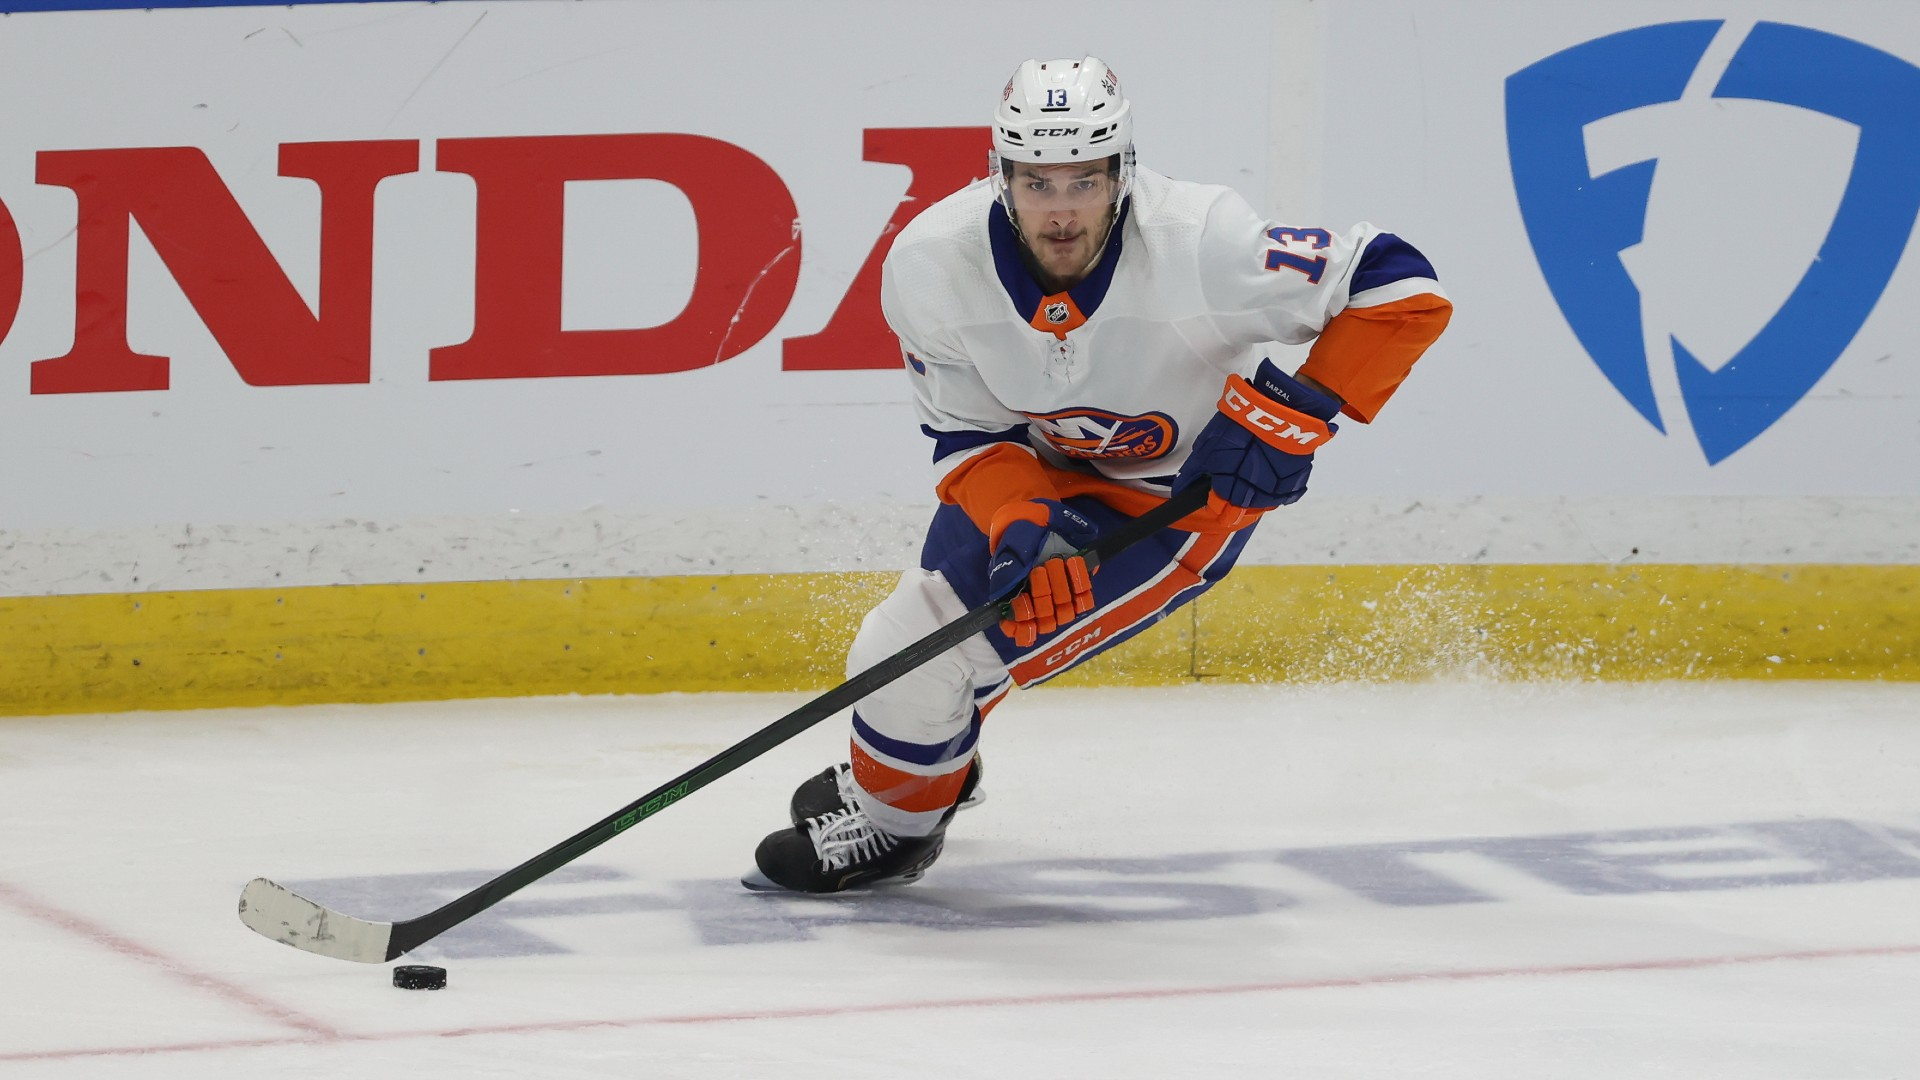 As a result of Mathew Barzal's main Game 5, the misbehavior calls into question 6. The state of the game